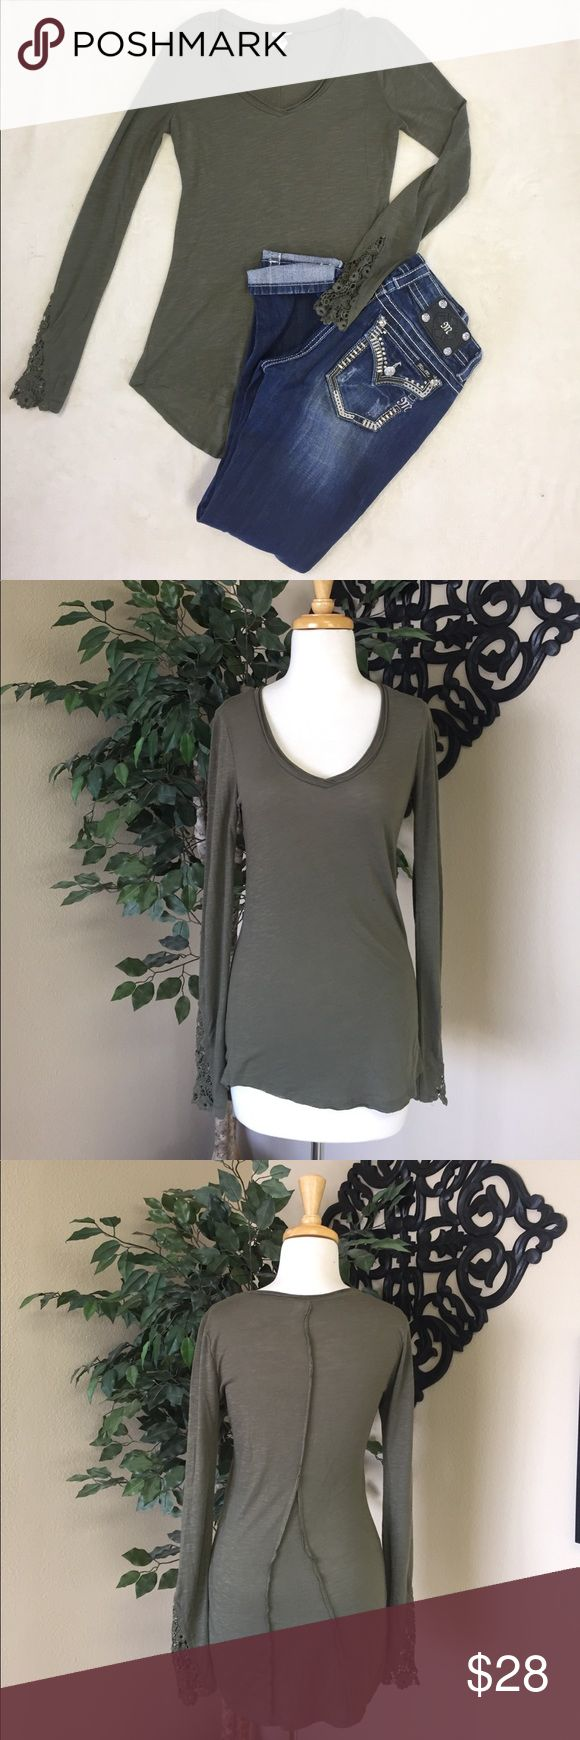 Others Follow Long Sleeve Adorable olive green long sleeve top with fun hems and crocheted sleeves. Only worn once! Excellent condition!! Make an offer! Others Follow Tops Tees - Long Sleeve